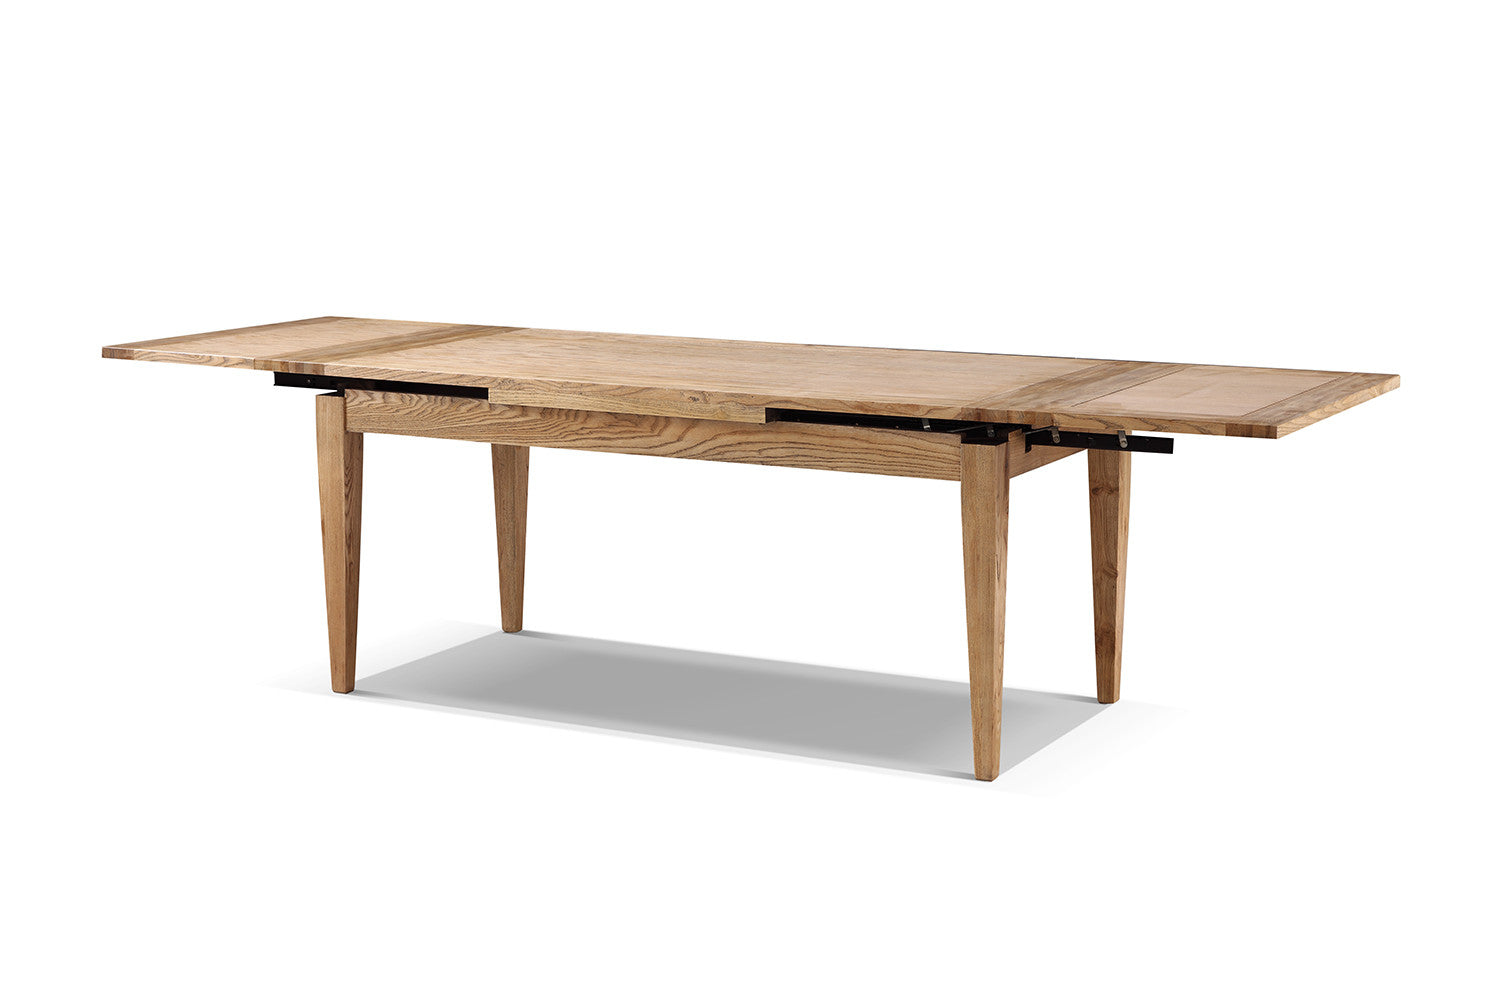 Table salle a manger extensible en bois d coration de for Table contemporaine extensible